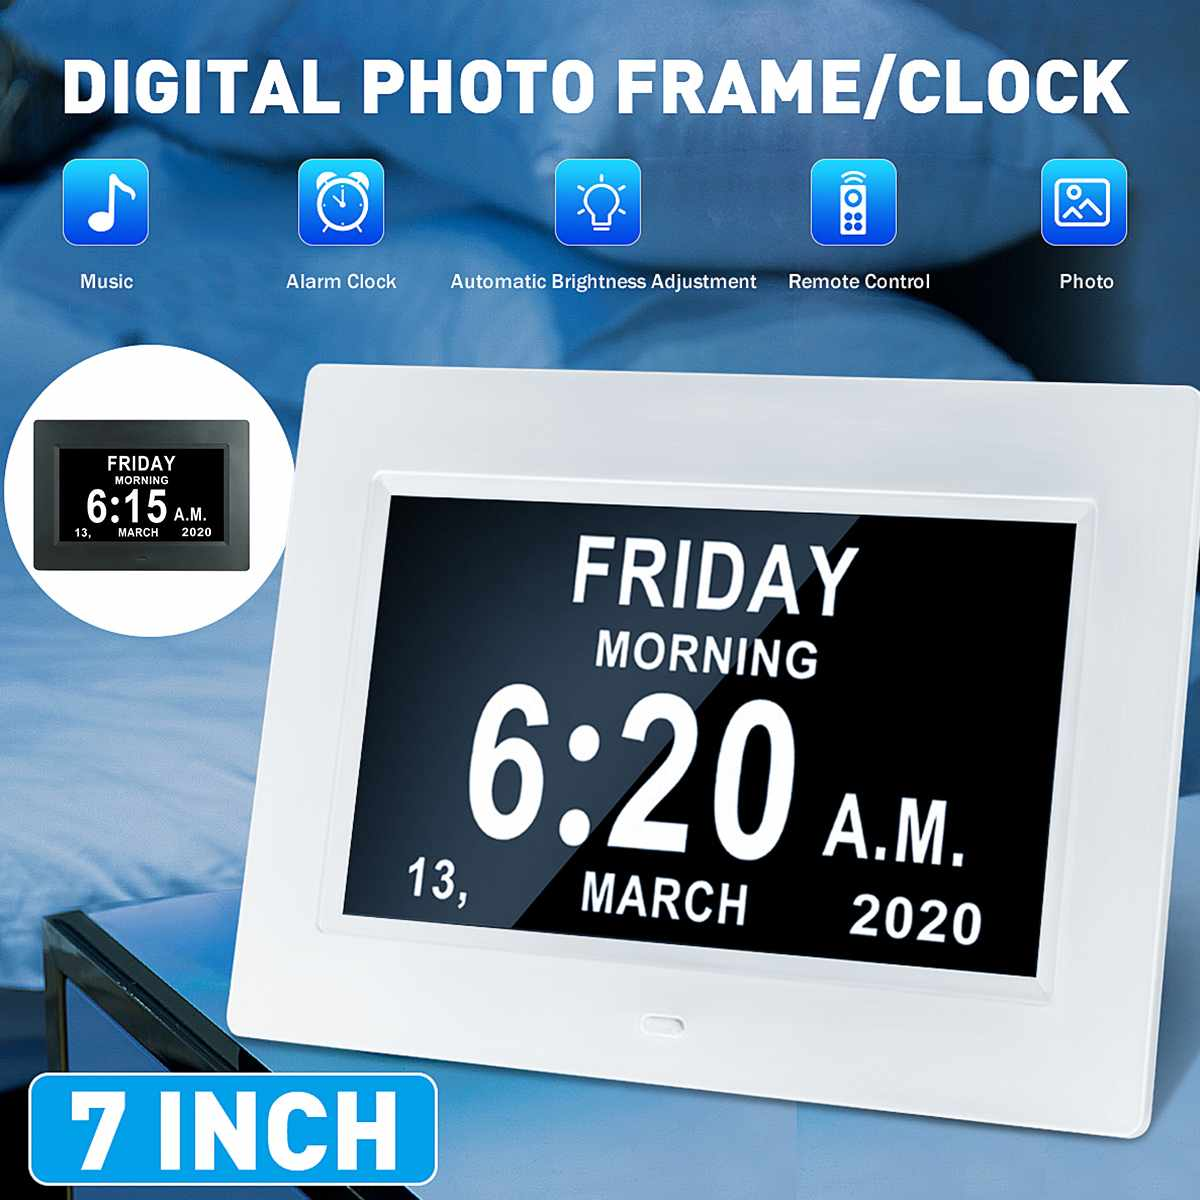 7 Inch Screen Digital Photo Frames HD LED Backlight Full Function Electronic Album Photo Music Calendar Dual Date Mode Alarm